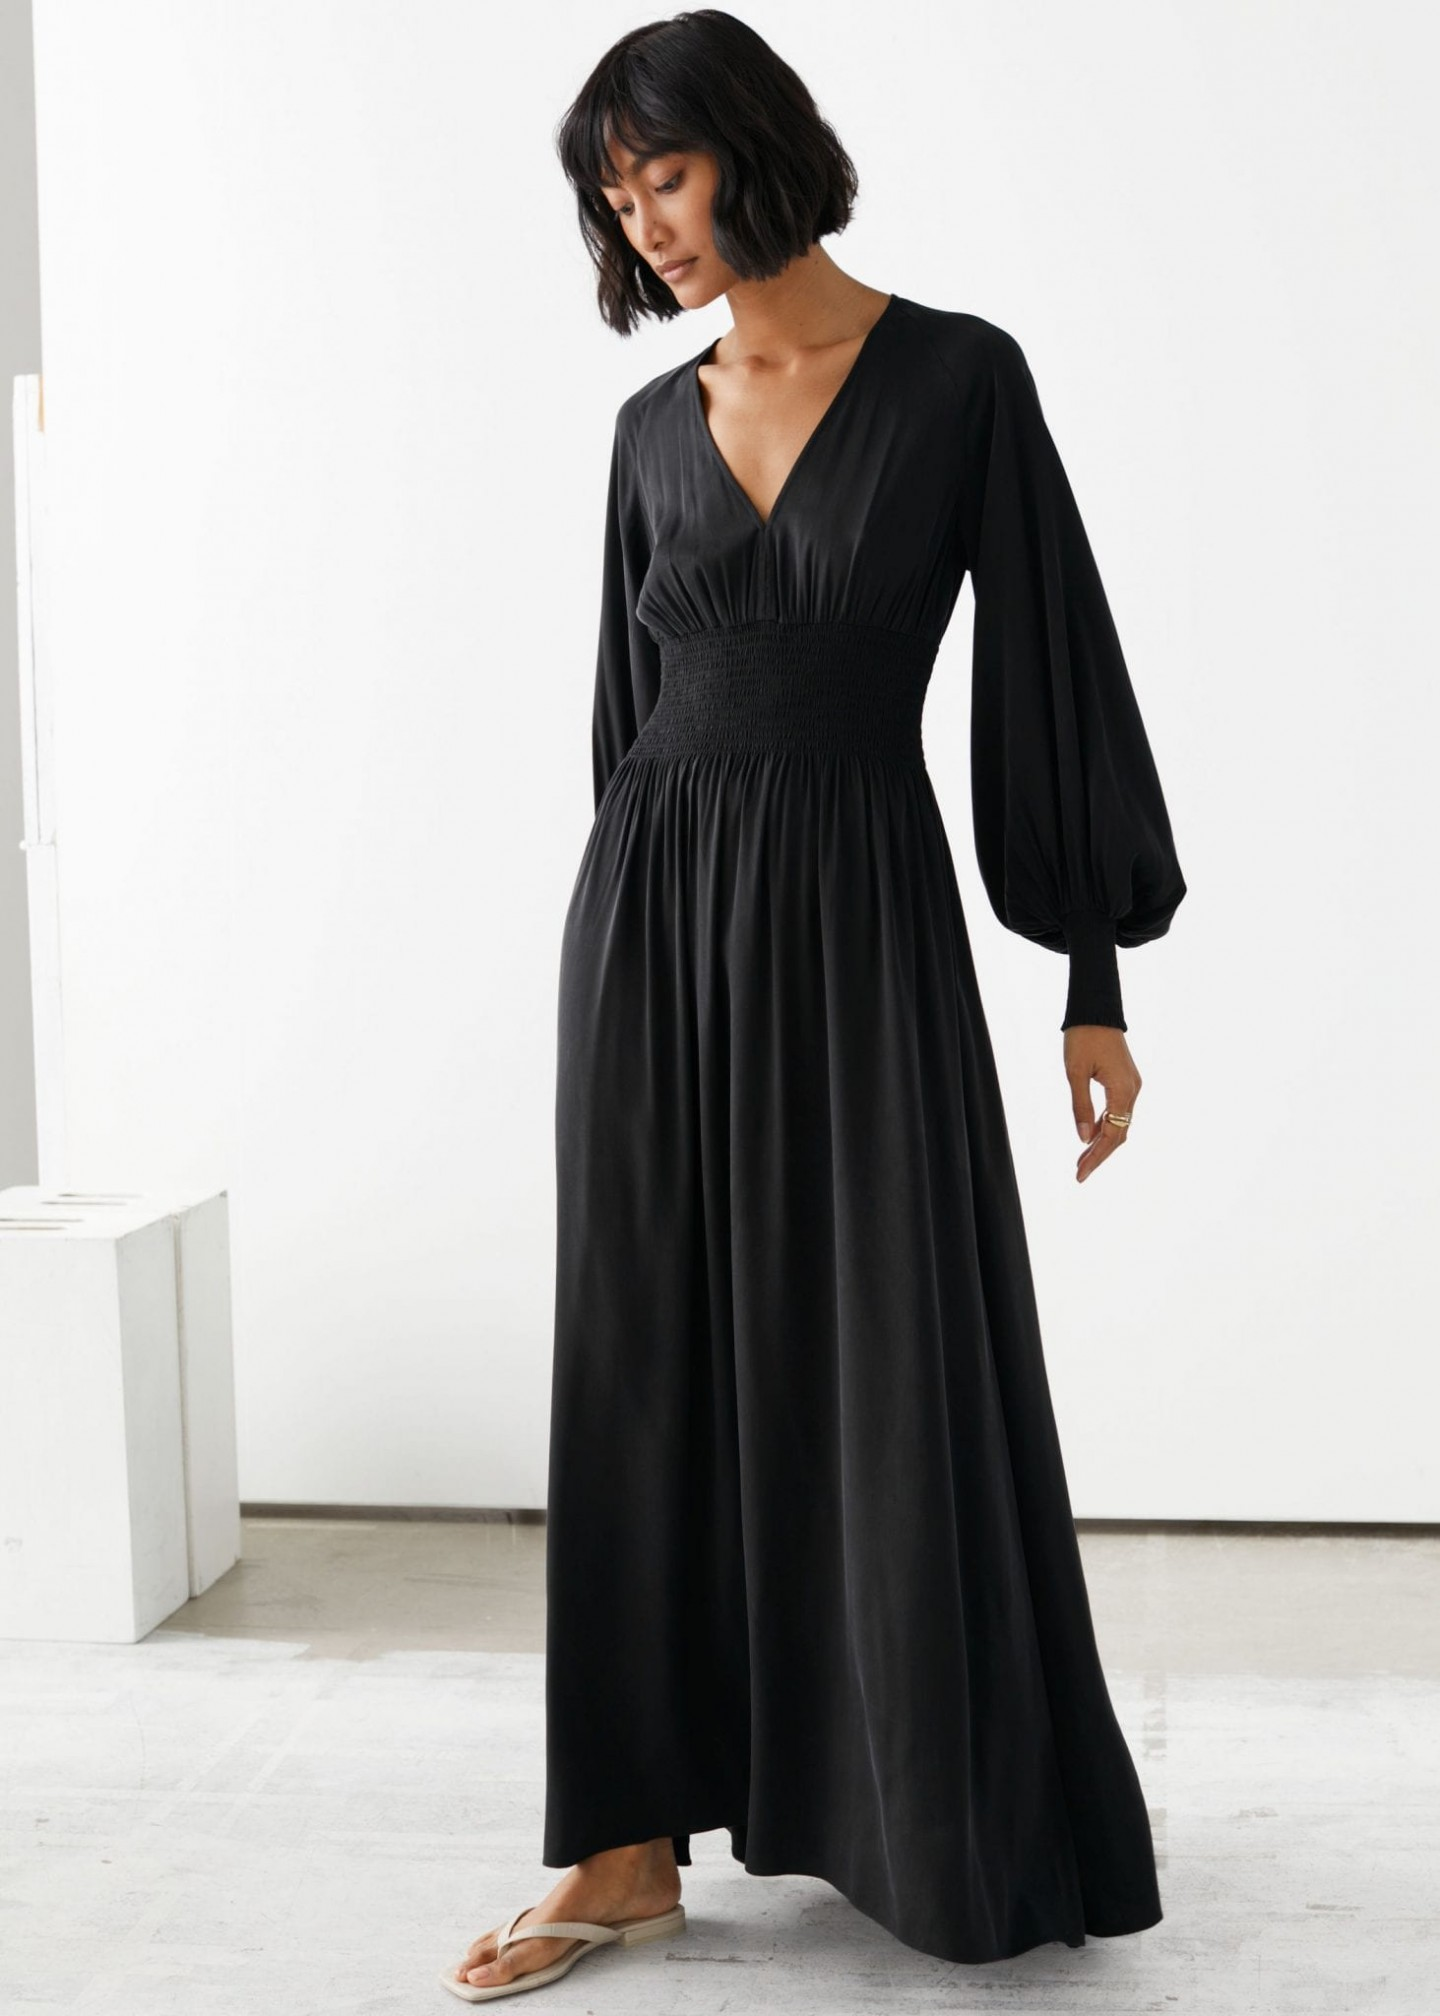 OTHER STORIES Smocked Waist Maxi Dress